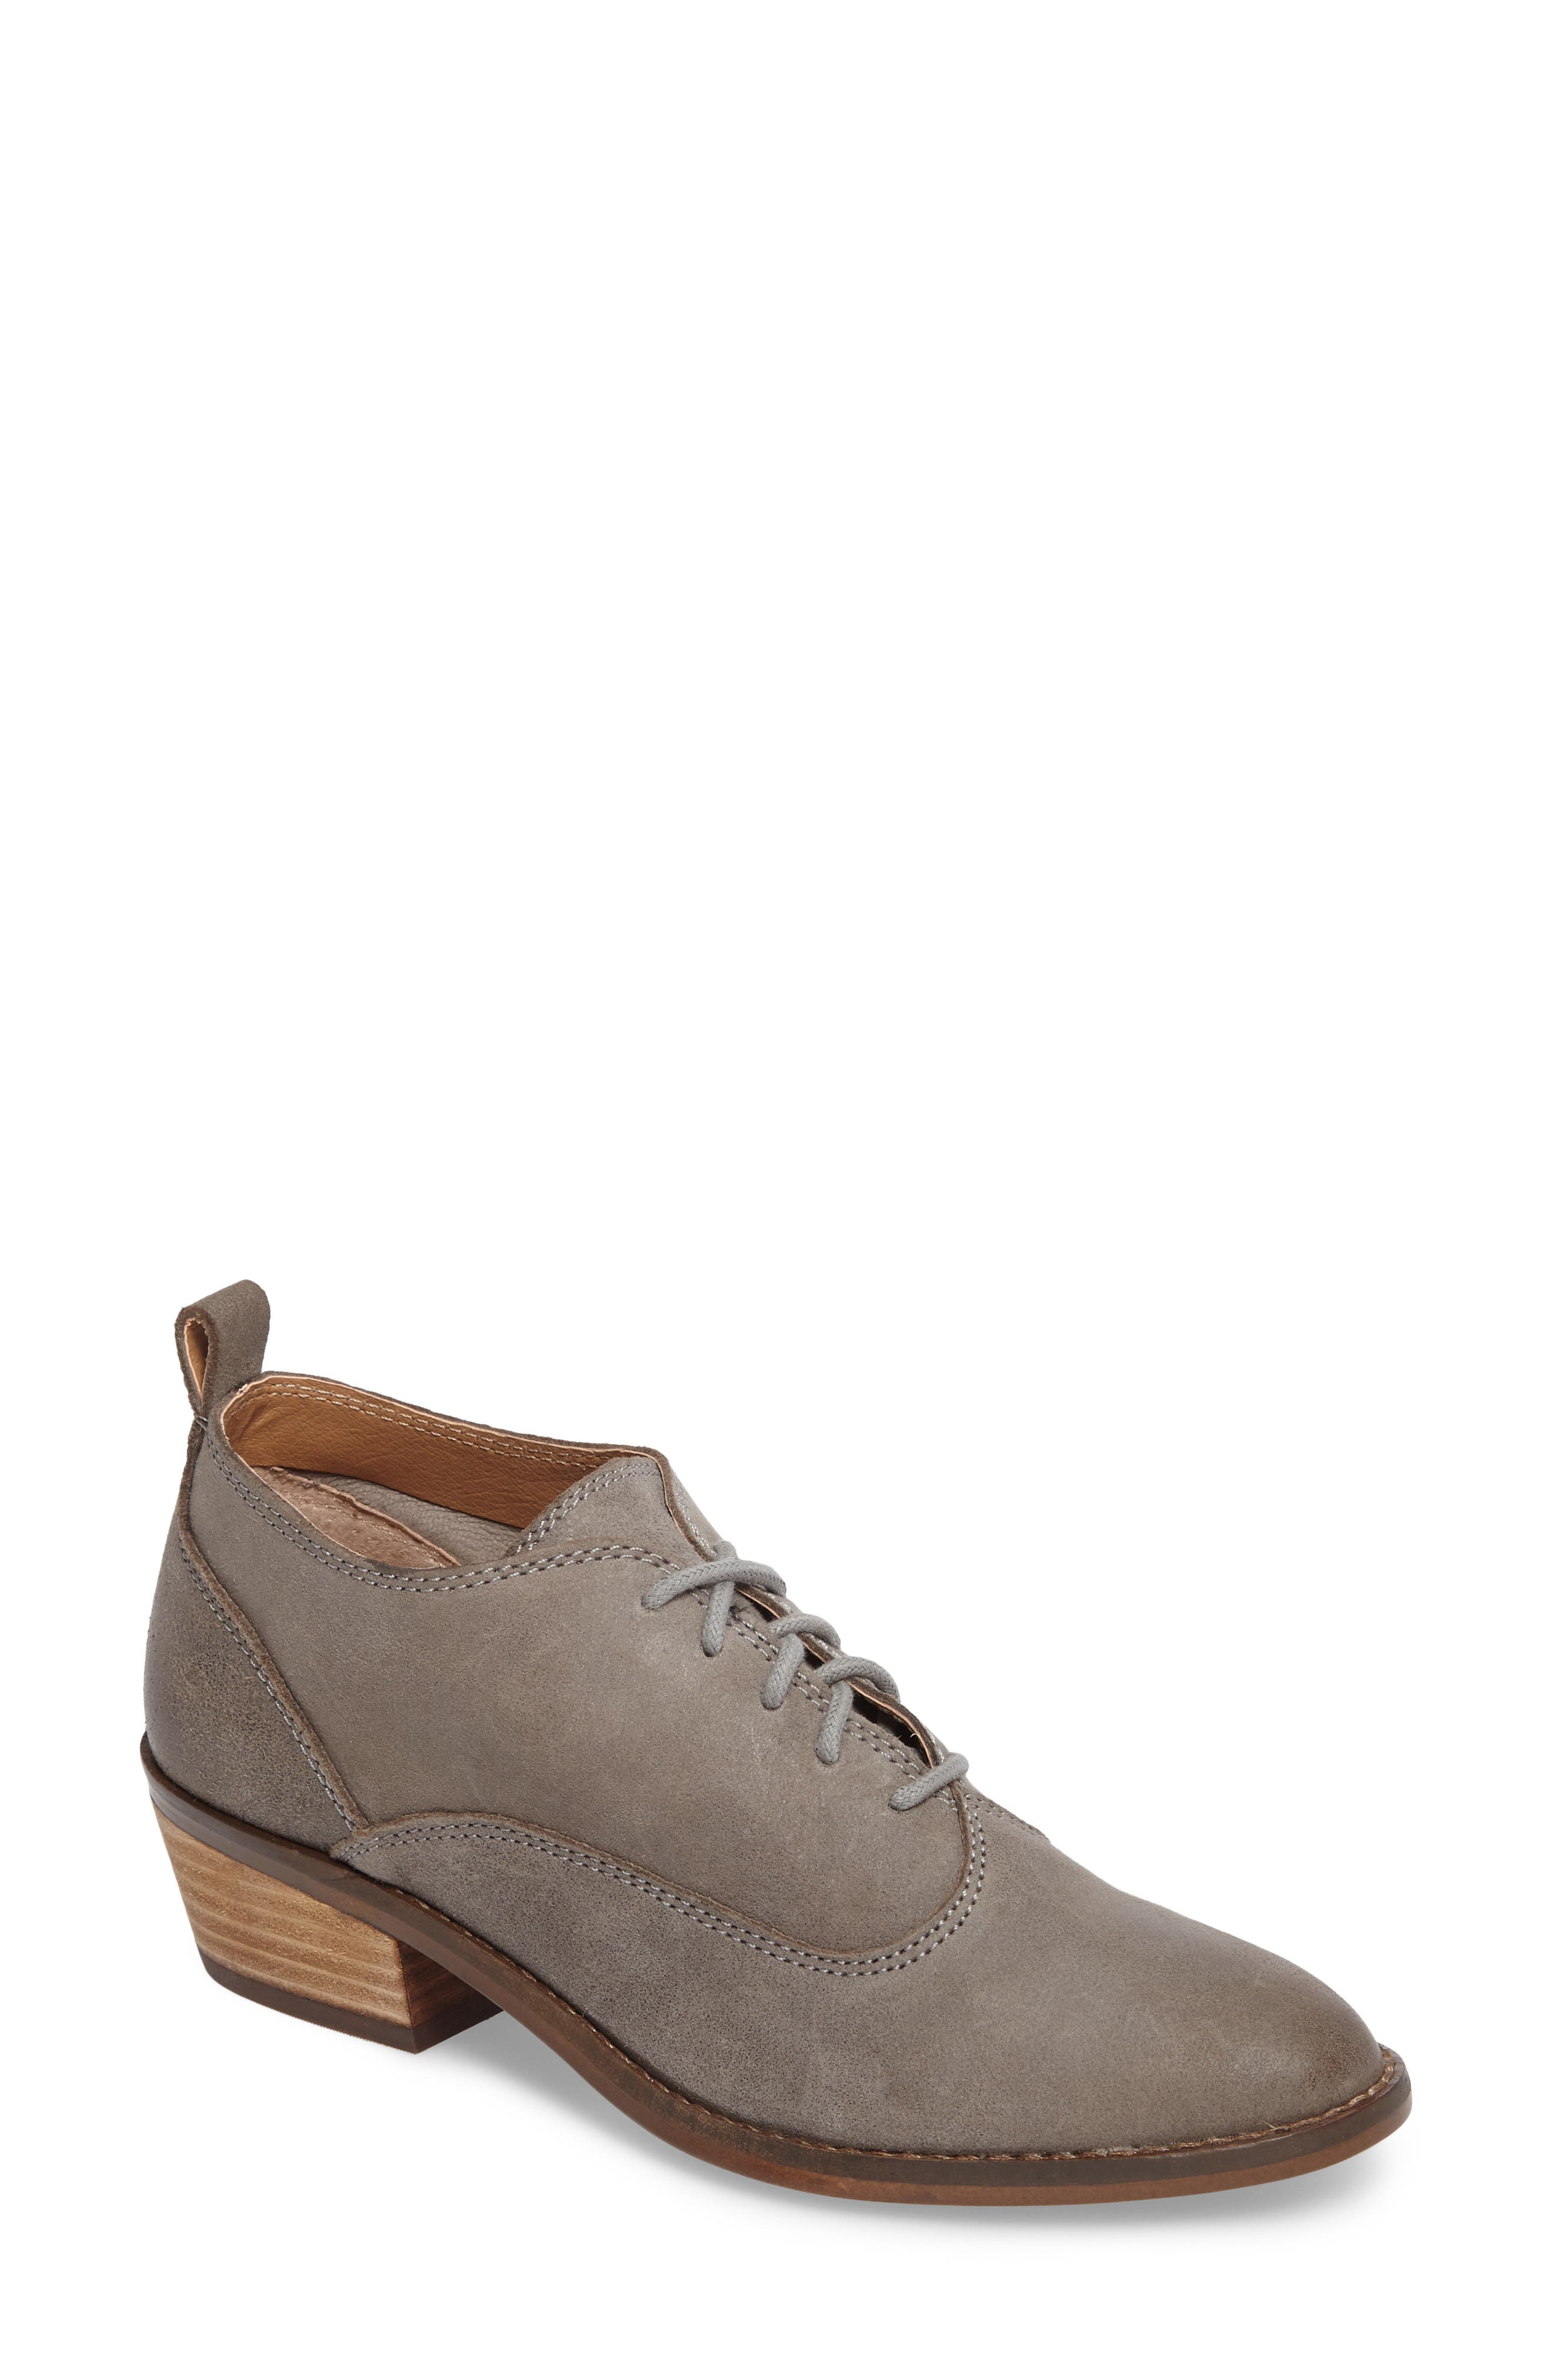 Main Image - Lucky Brand Fantine Lace-Up Bootie (Women)